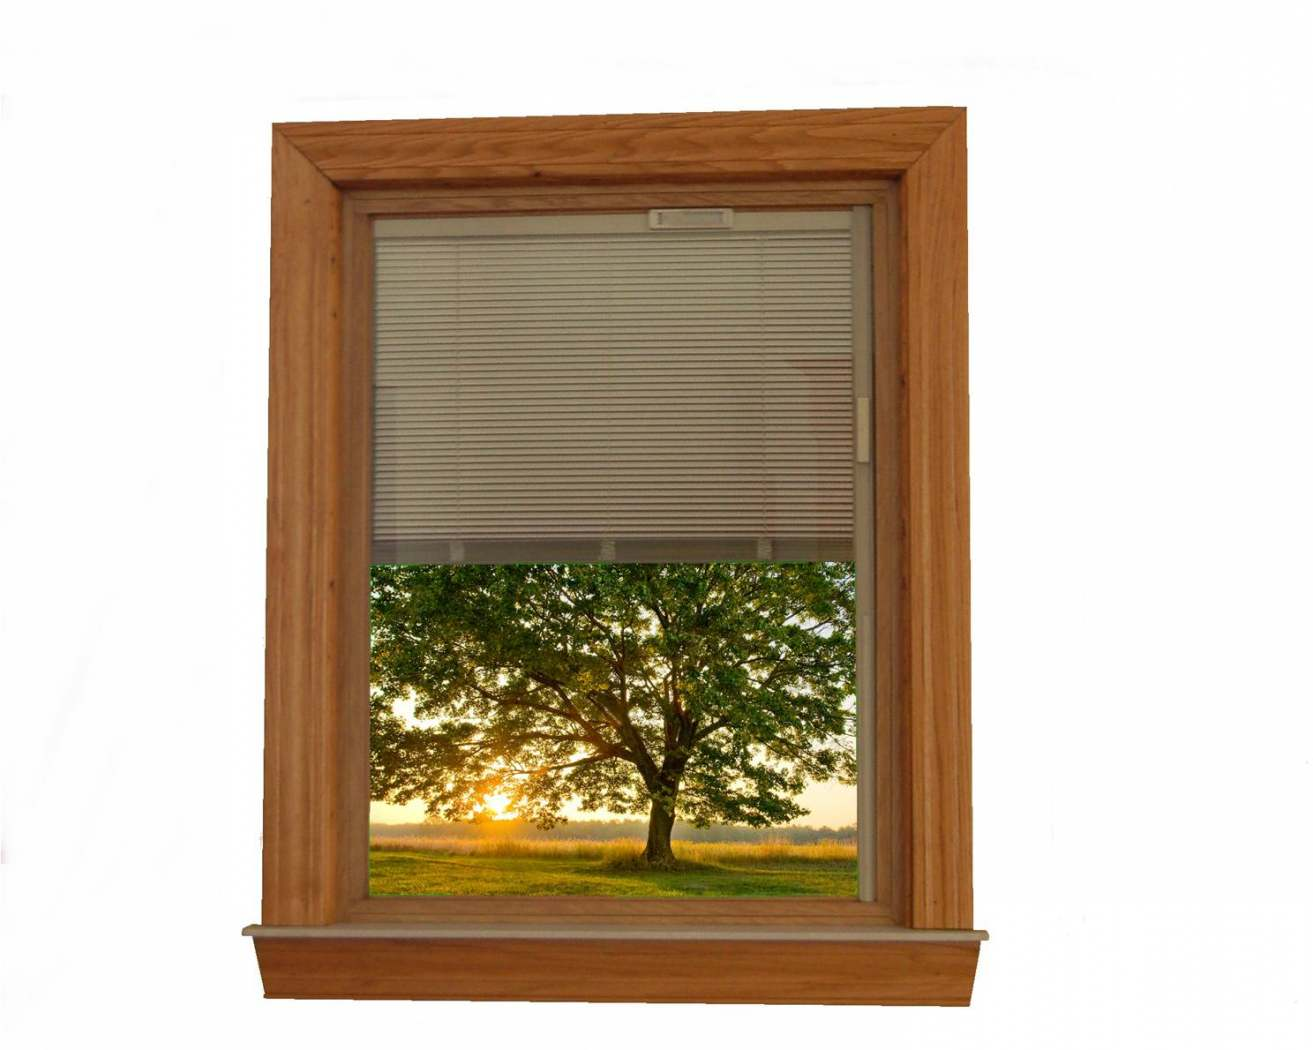 picture window with blinds between the glass